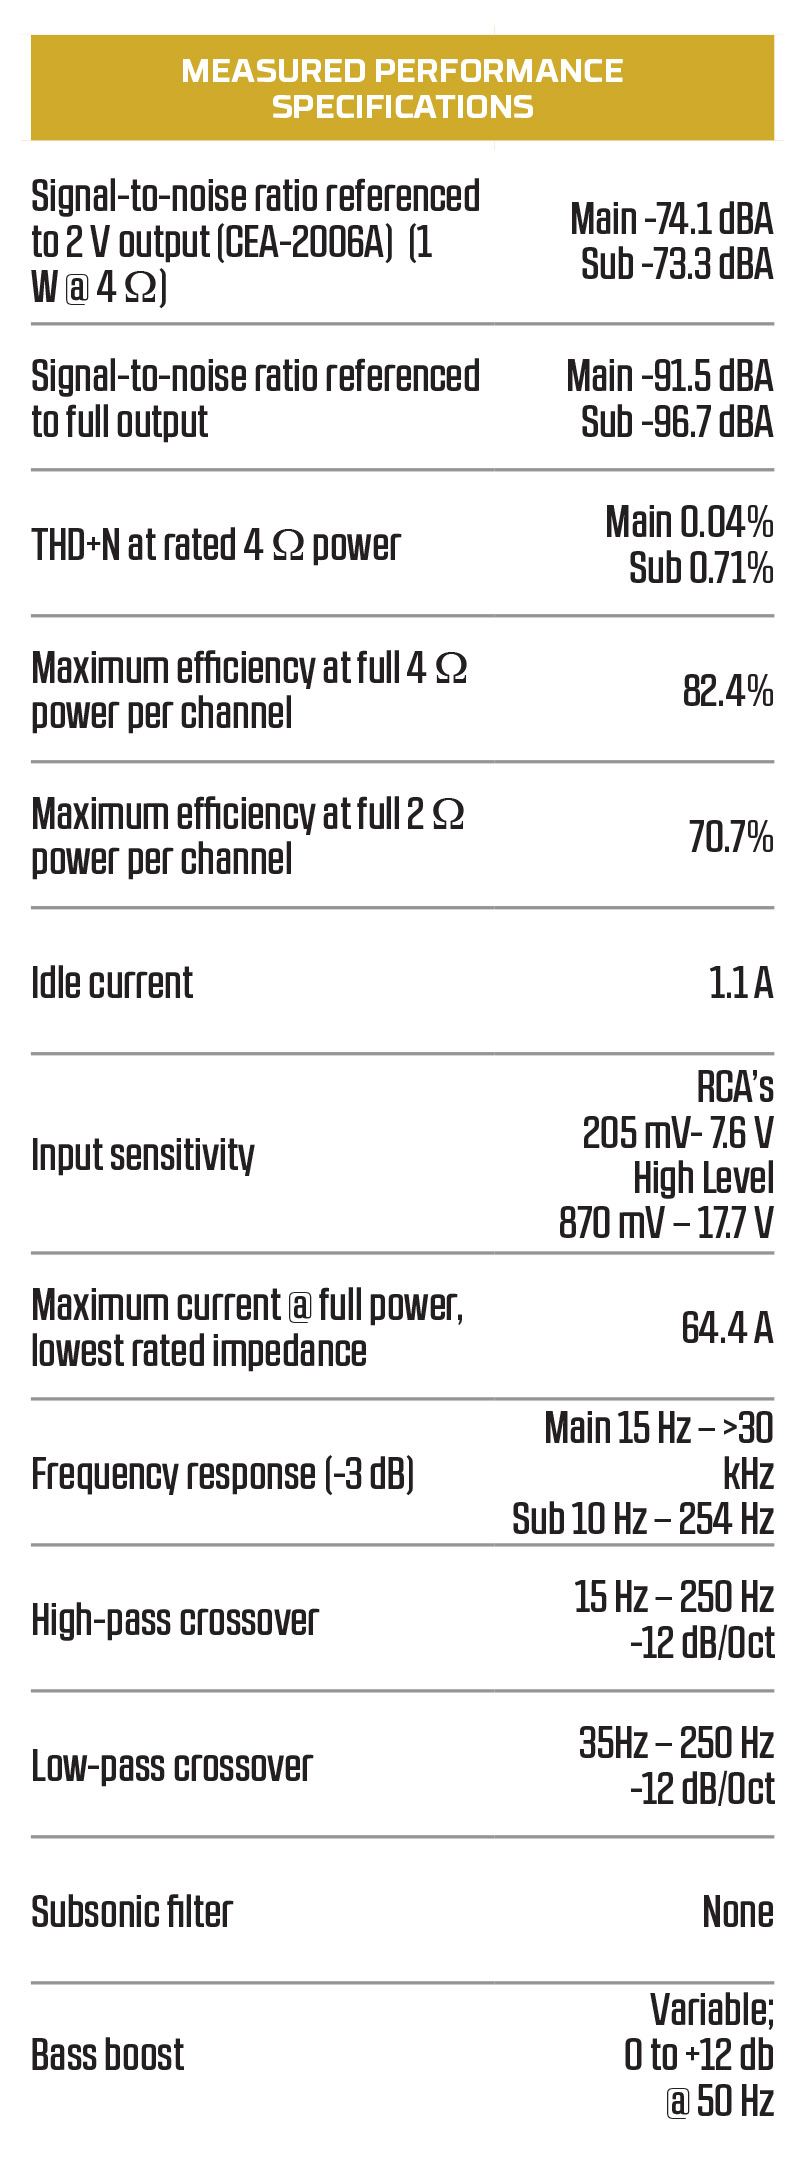 Clarion XC2510 Compact Amplifier: Measured Performance Specifications